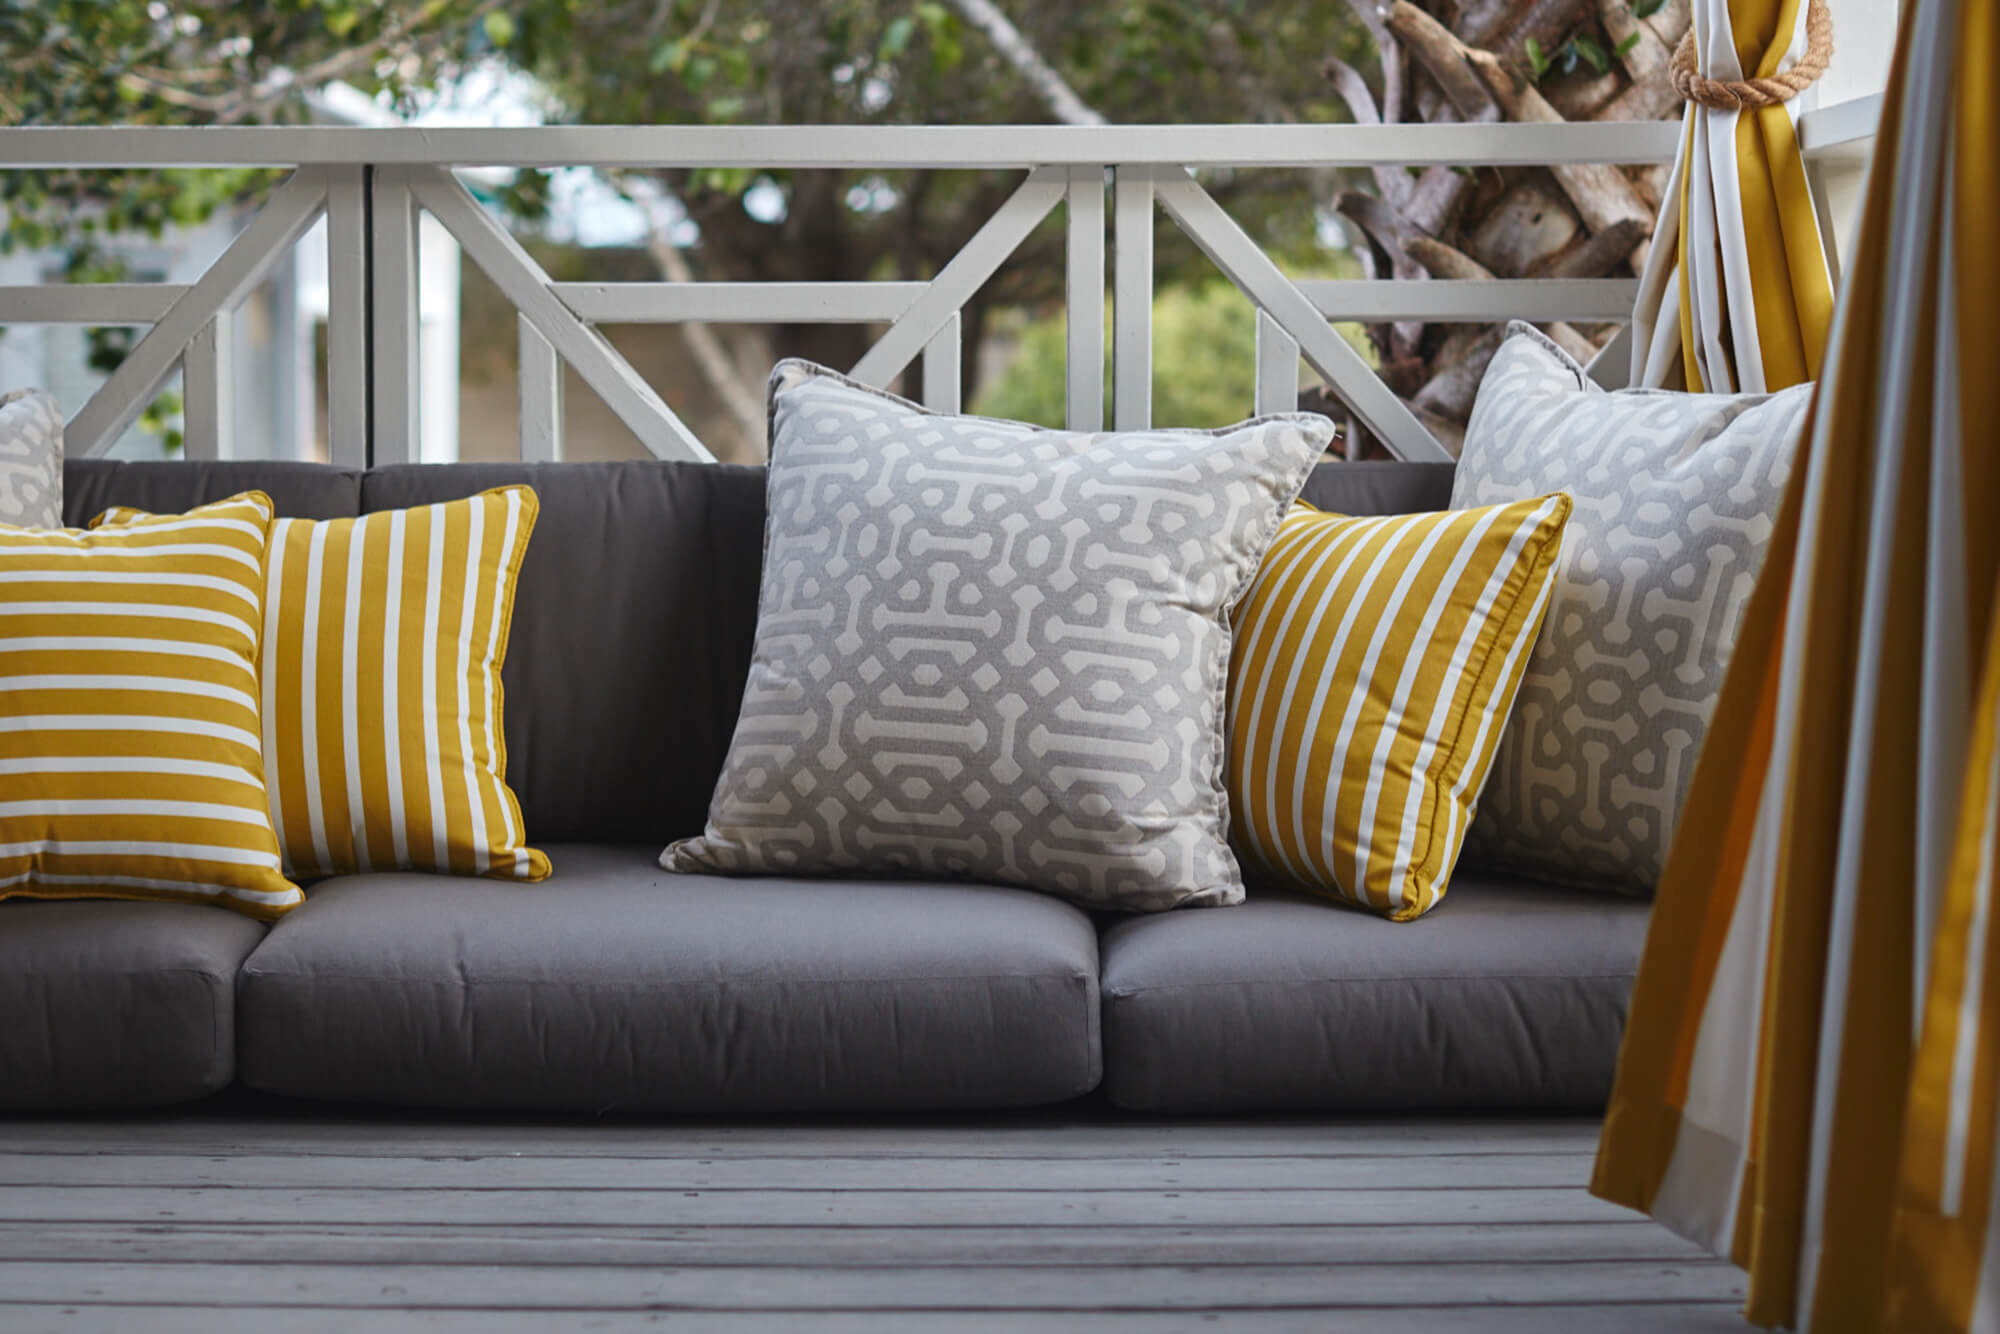 Grey cushions on a patio with grey and yellow throw pillows